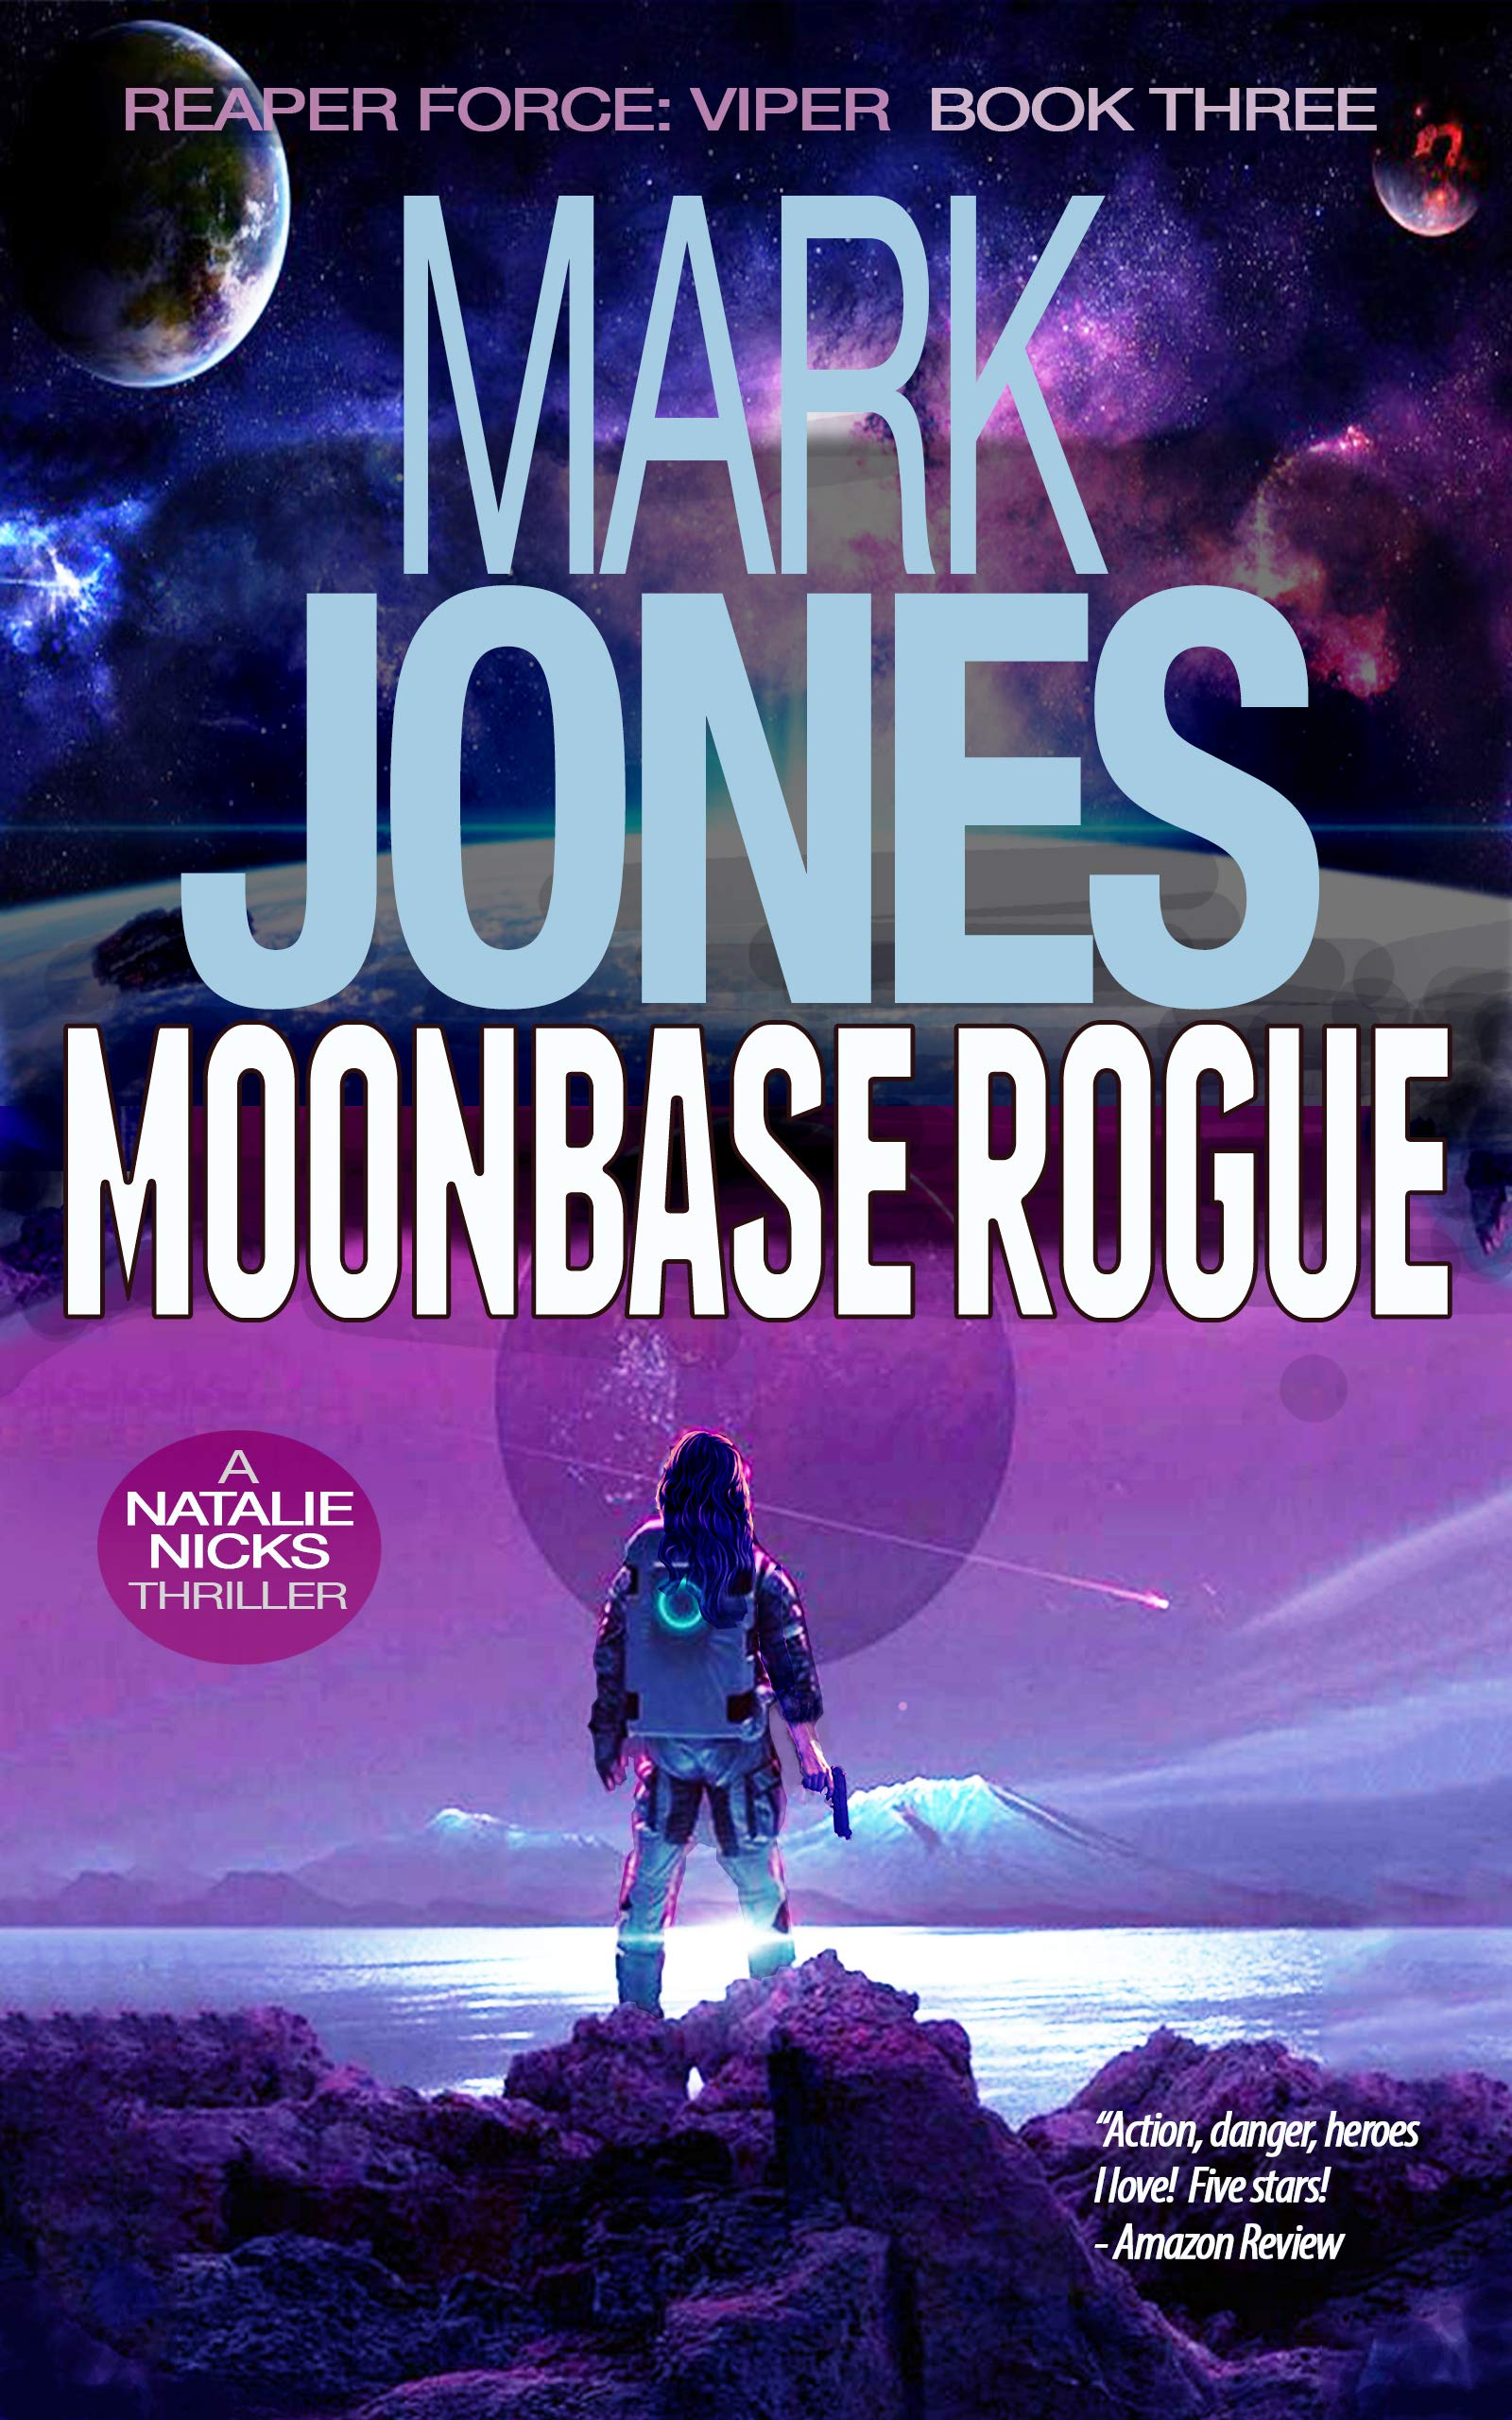 Moonbase Rogue: An Action-Packed High-Tech Spy Thriller (Reaper Force: Viper Book 3)